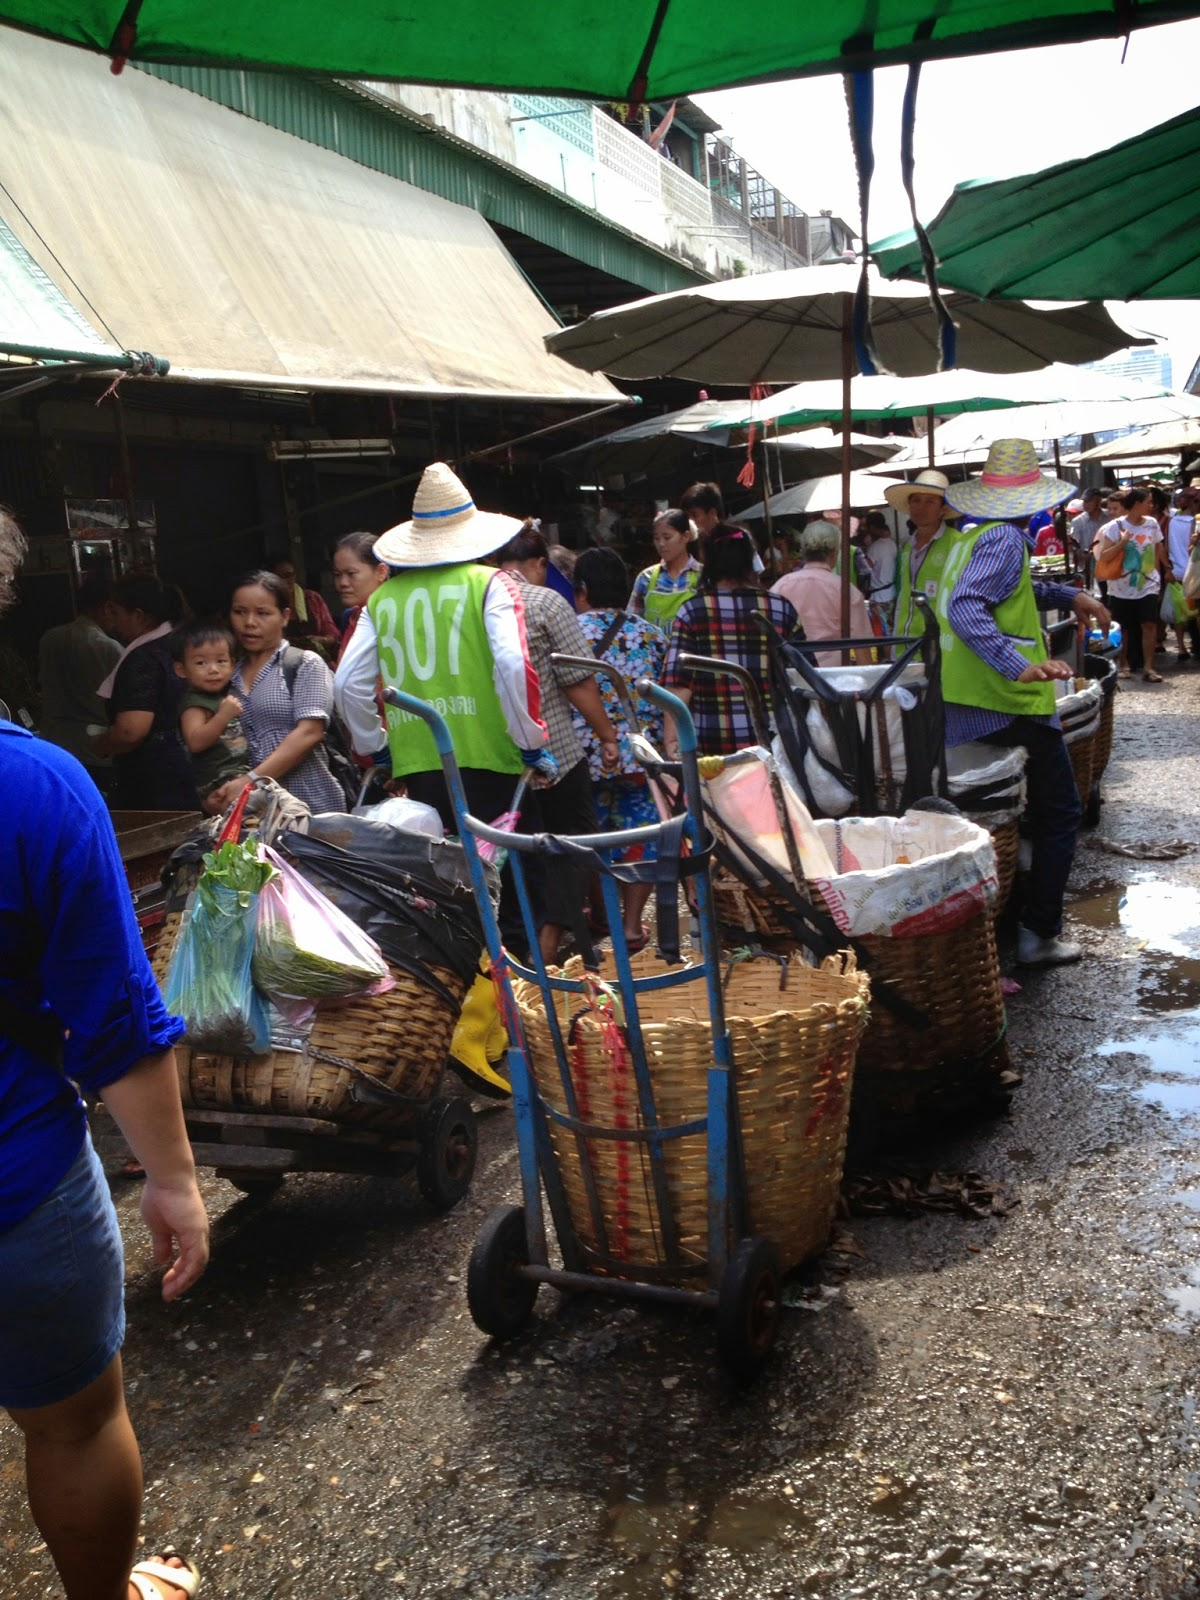 Bangkok - Wet market - Porters set up their baskets in the center of the market